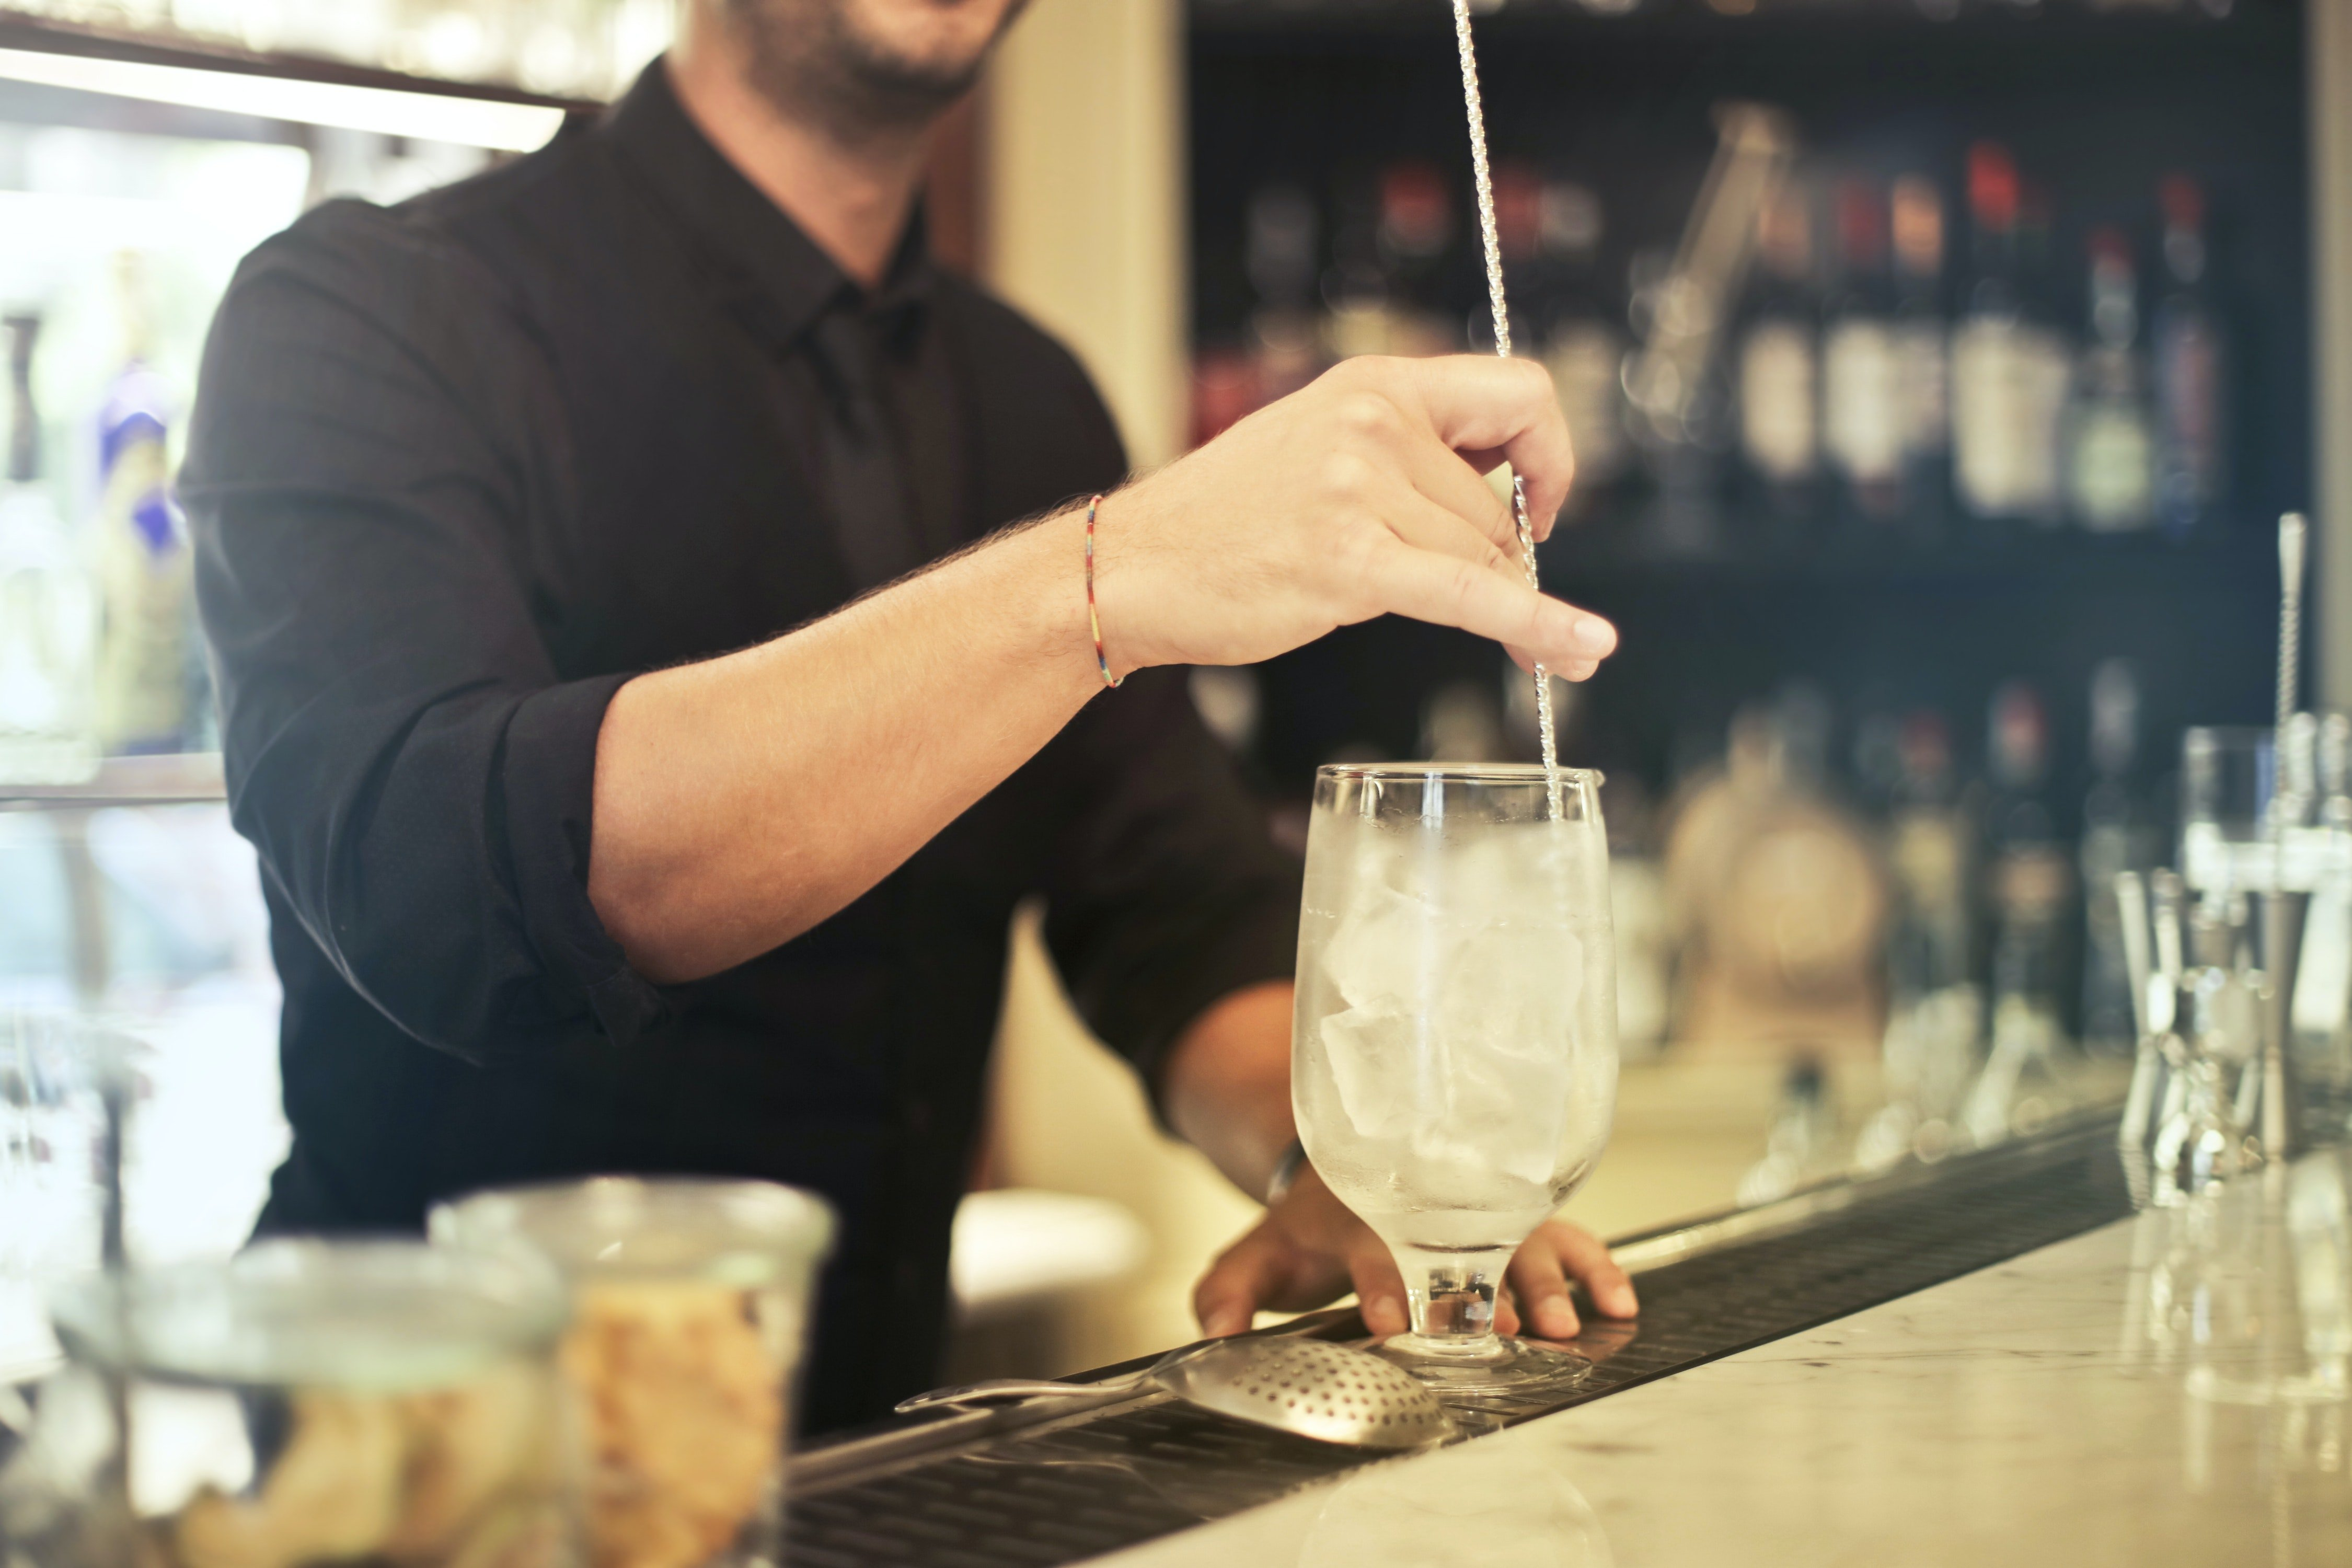 A bartender whipping up a drink.   Photo: Pexels/Andrea Piacquadio